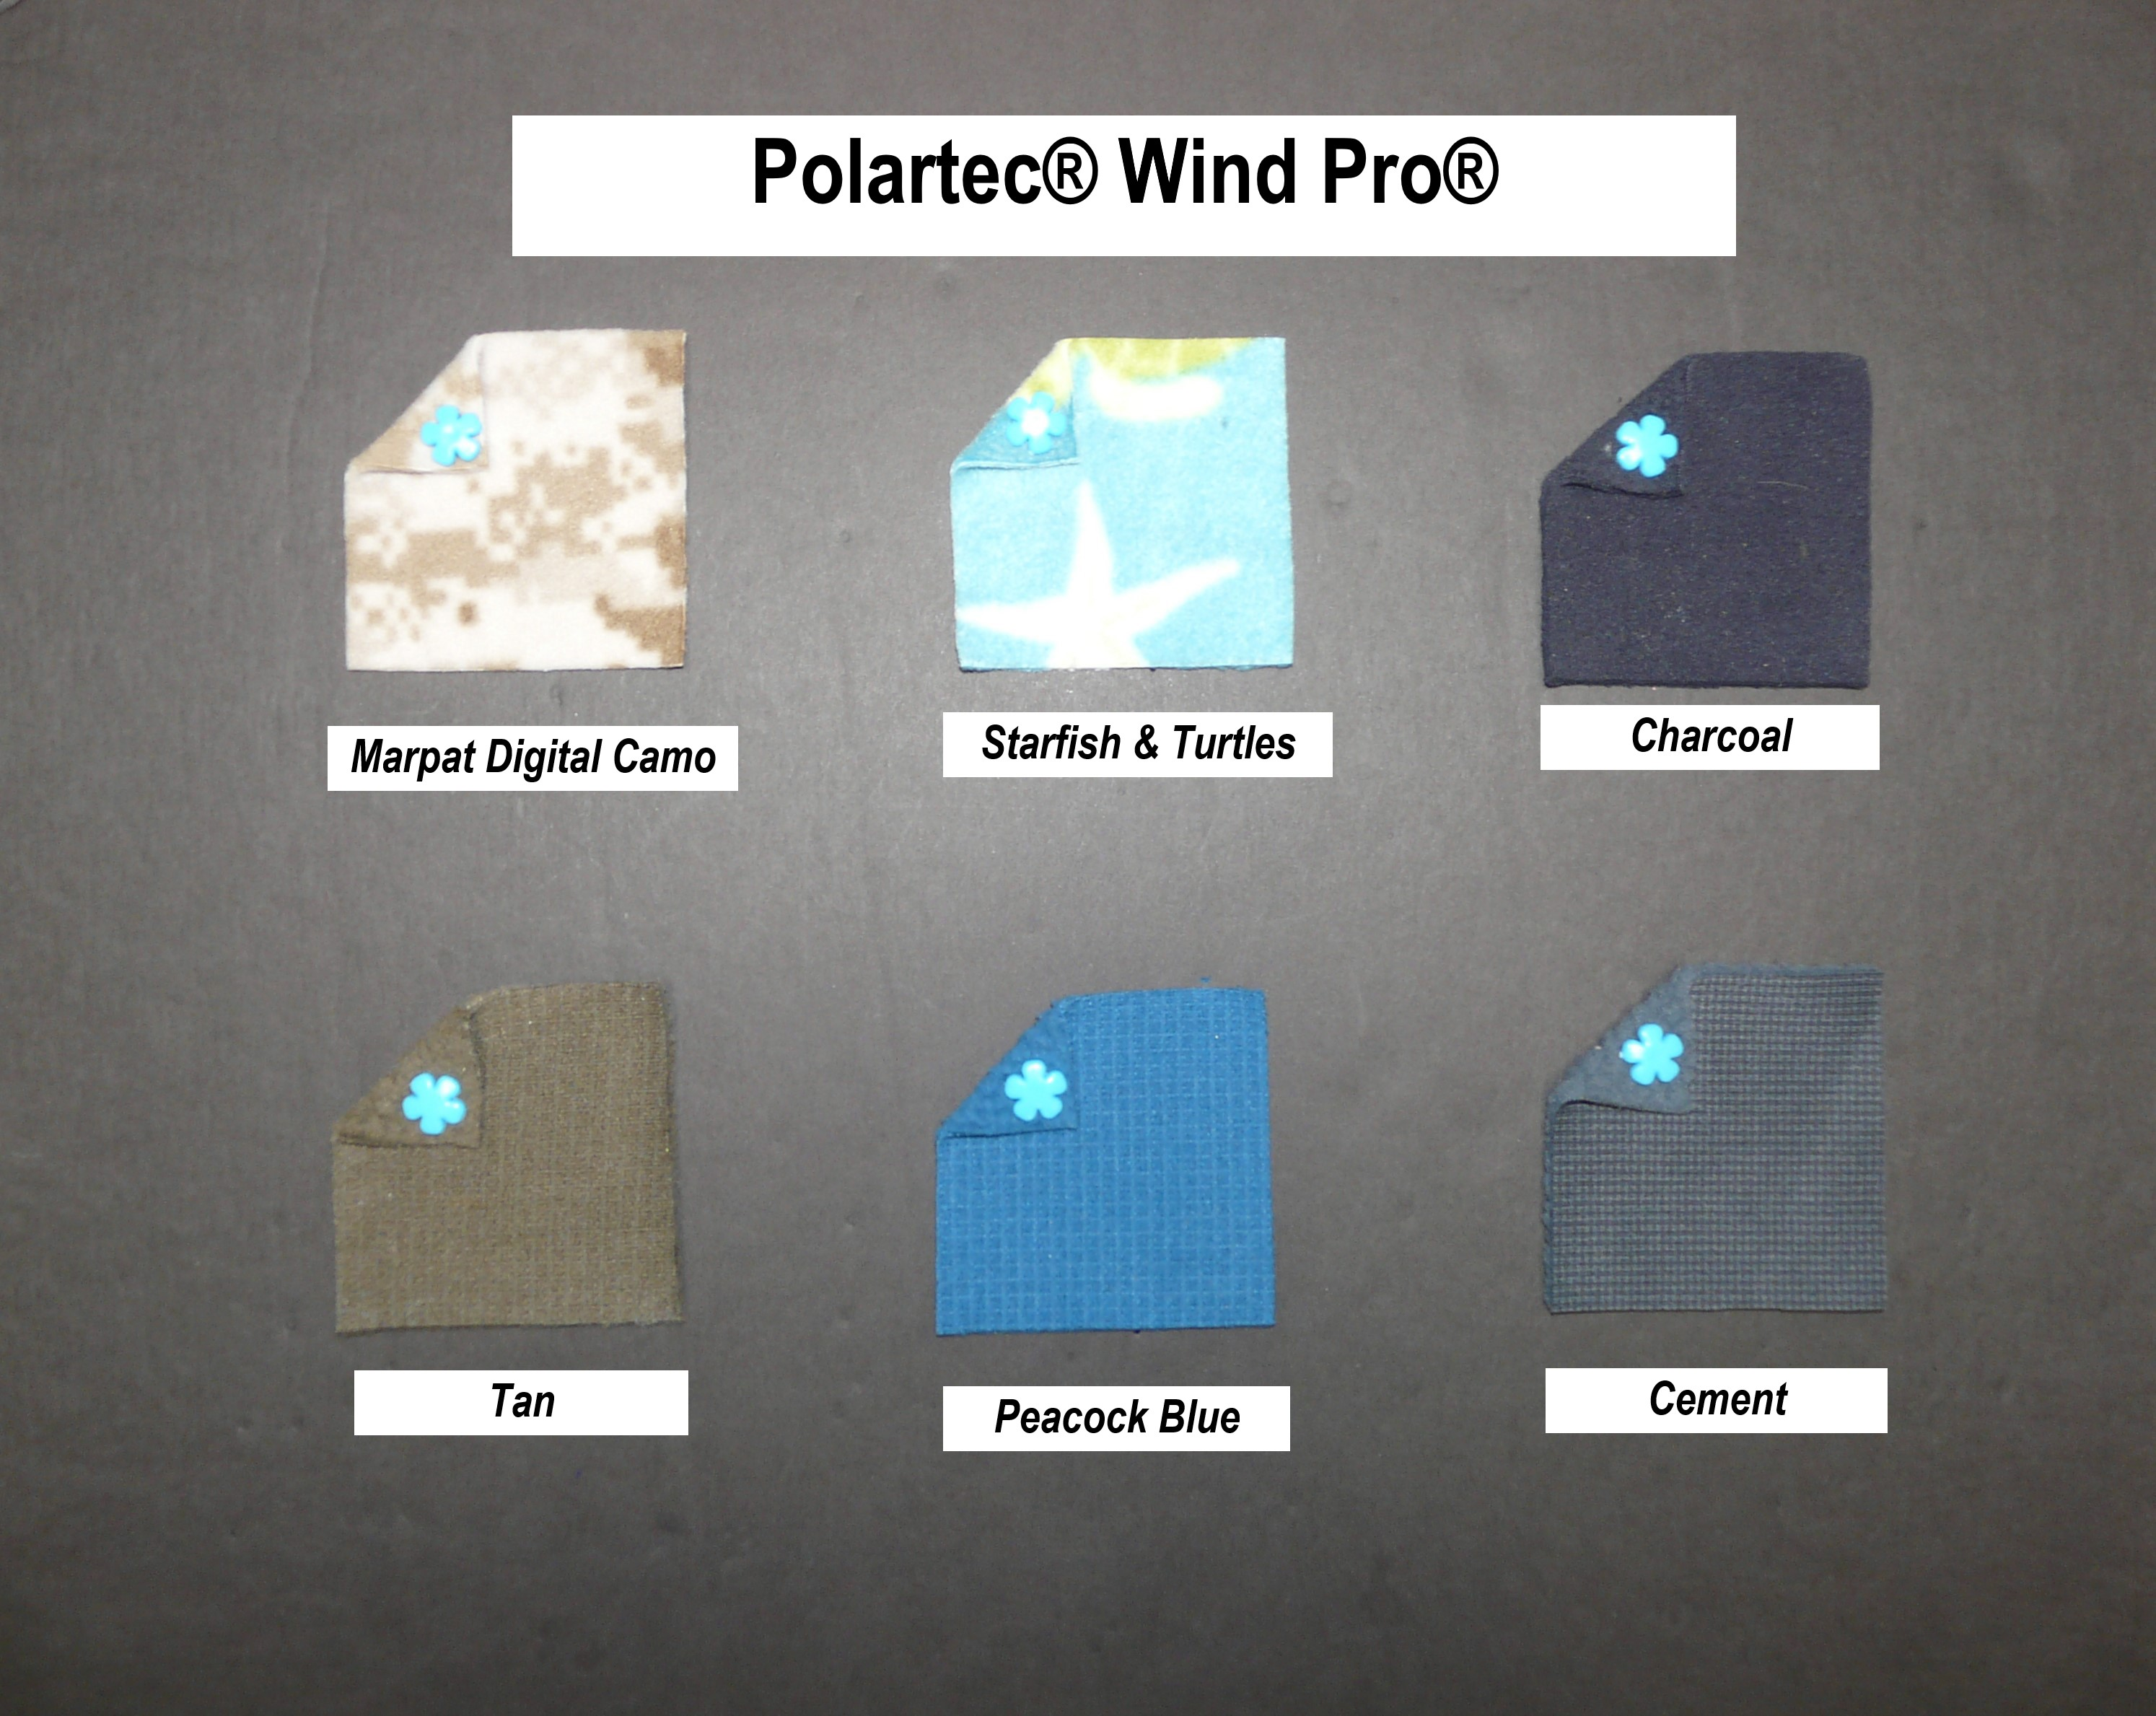 a55ef80876e Fabric swatches for Polartec Wind Pro fleece in Marpat Digital Camo,  Starfish and Turtles,